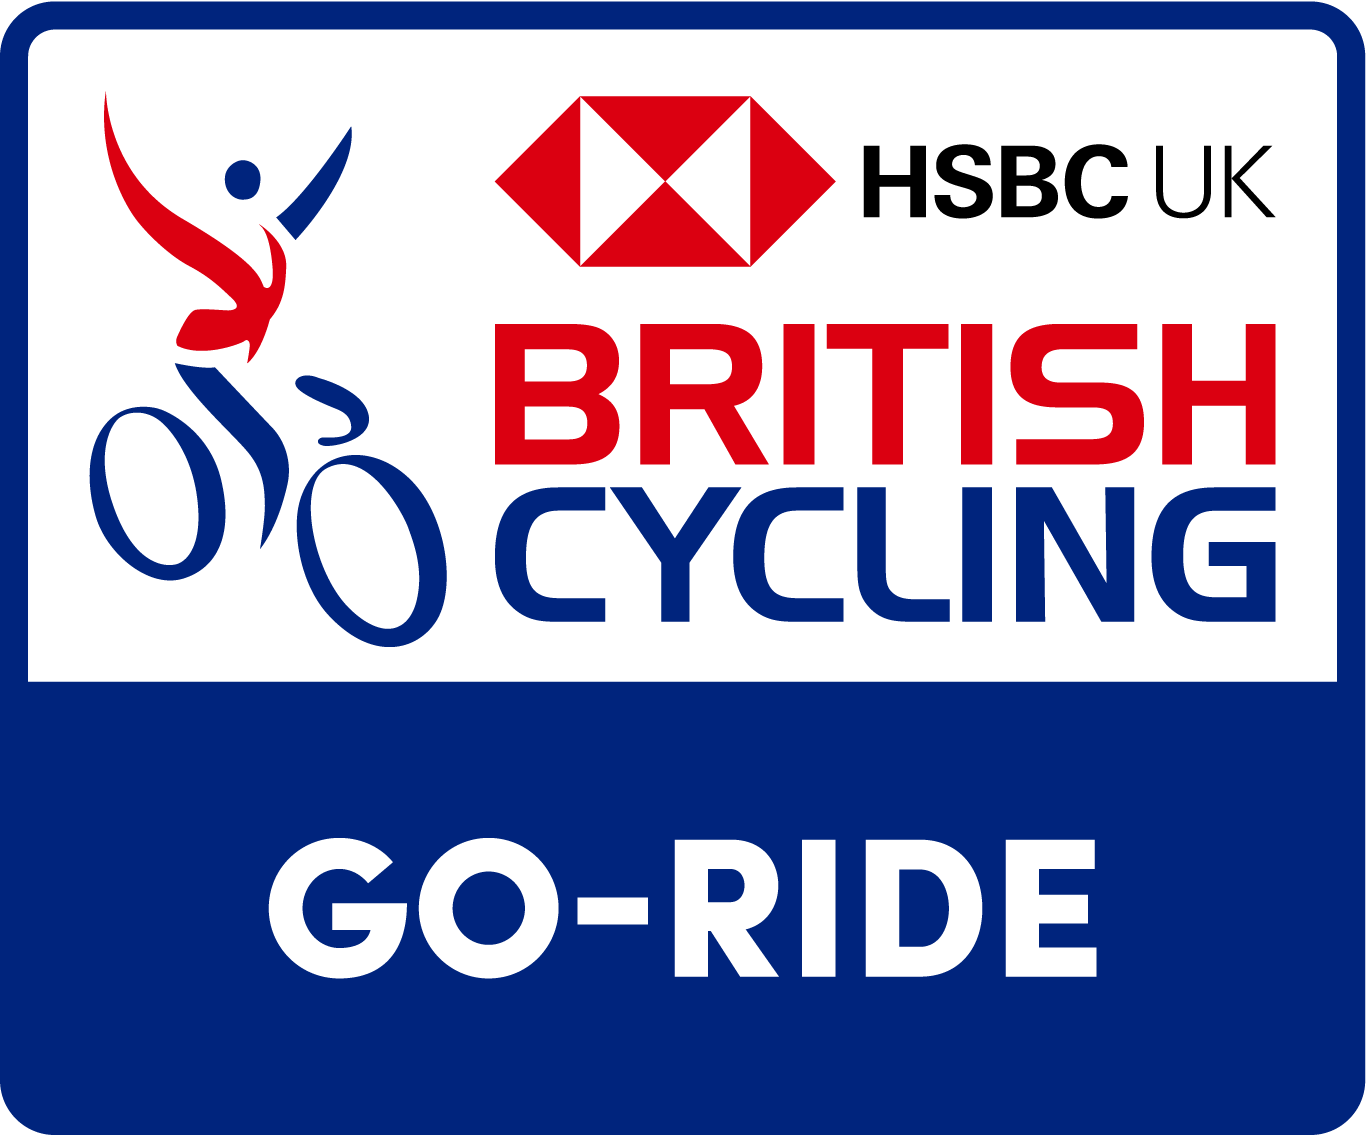 HSBC Go Ride logo